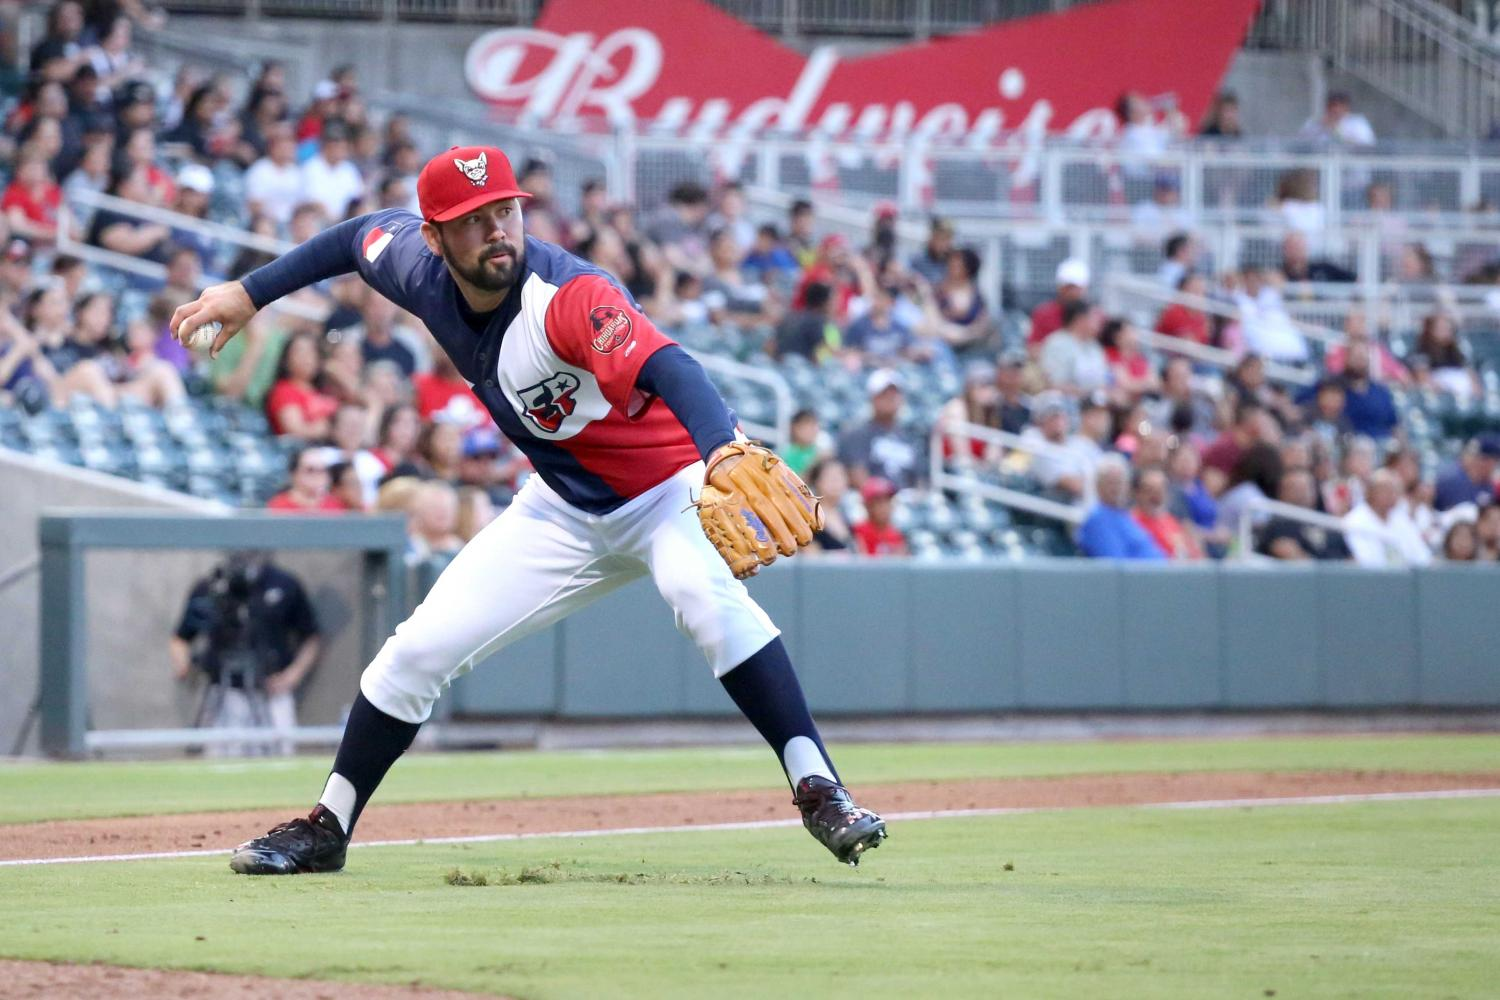 Chihuahuas+prevail+in+high+scoring+win+over+the+Grizzlies